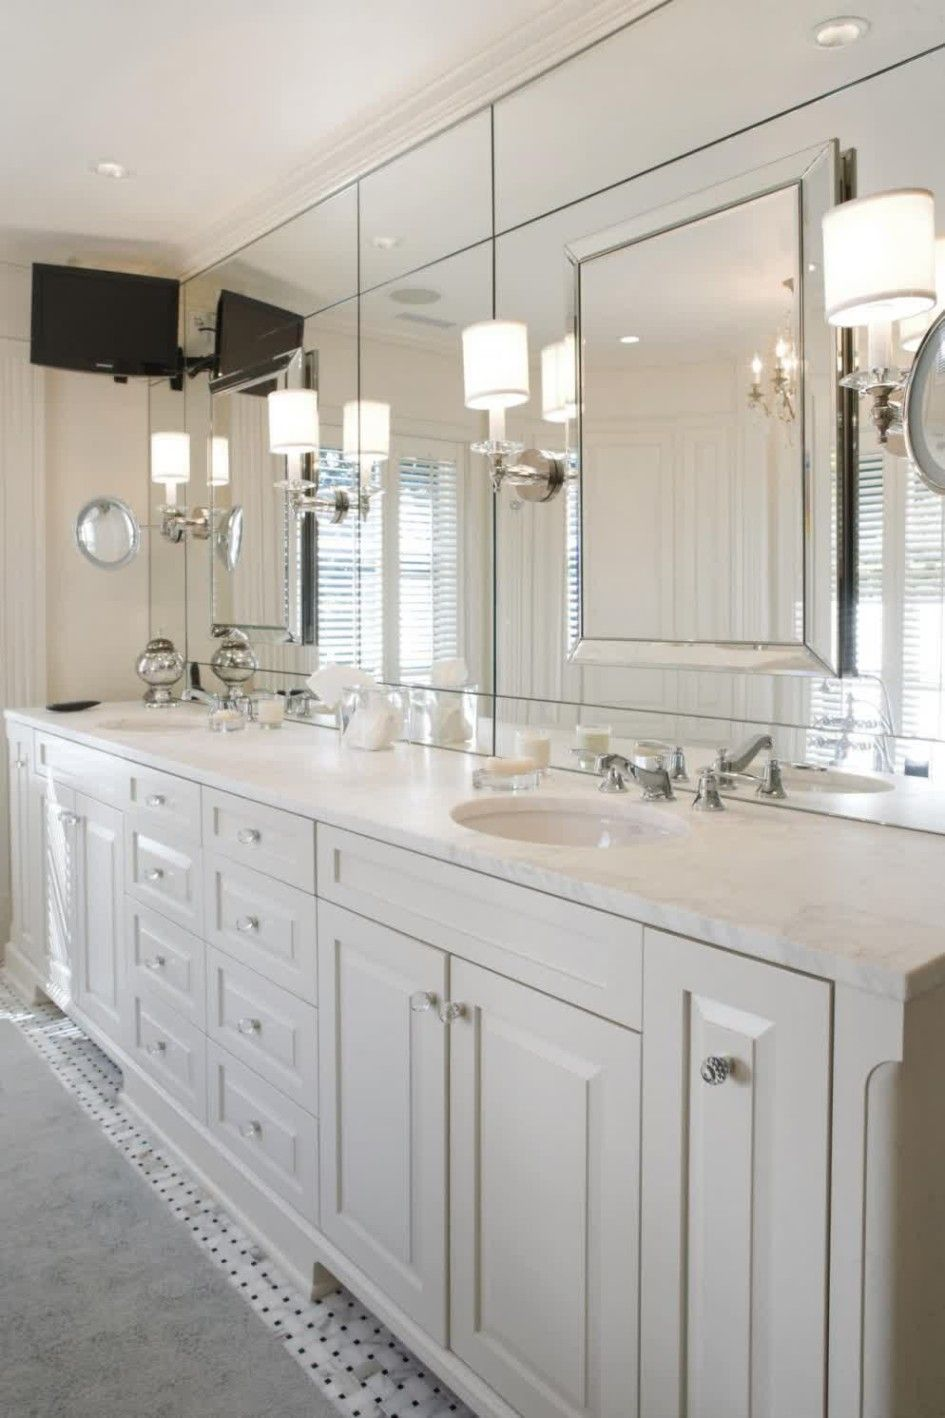 Bathroom Ideas, Modern Bathroom Wall Sconces With Large Frameless Mirror  Above Double Sink Bathroom Vanity Under Recessed Lights: Selecting Sweet  Bathroom ...